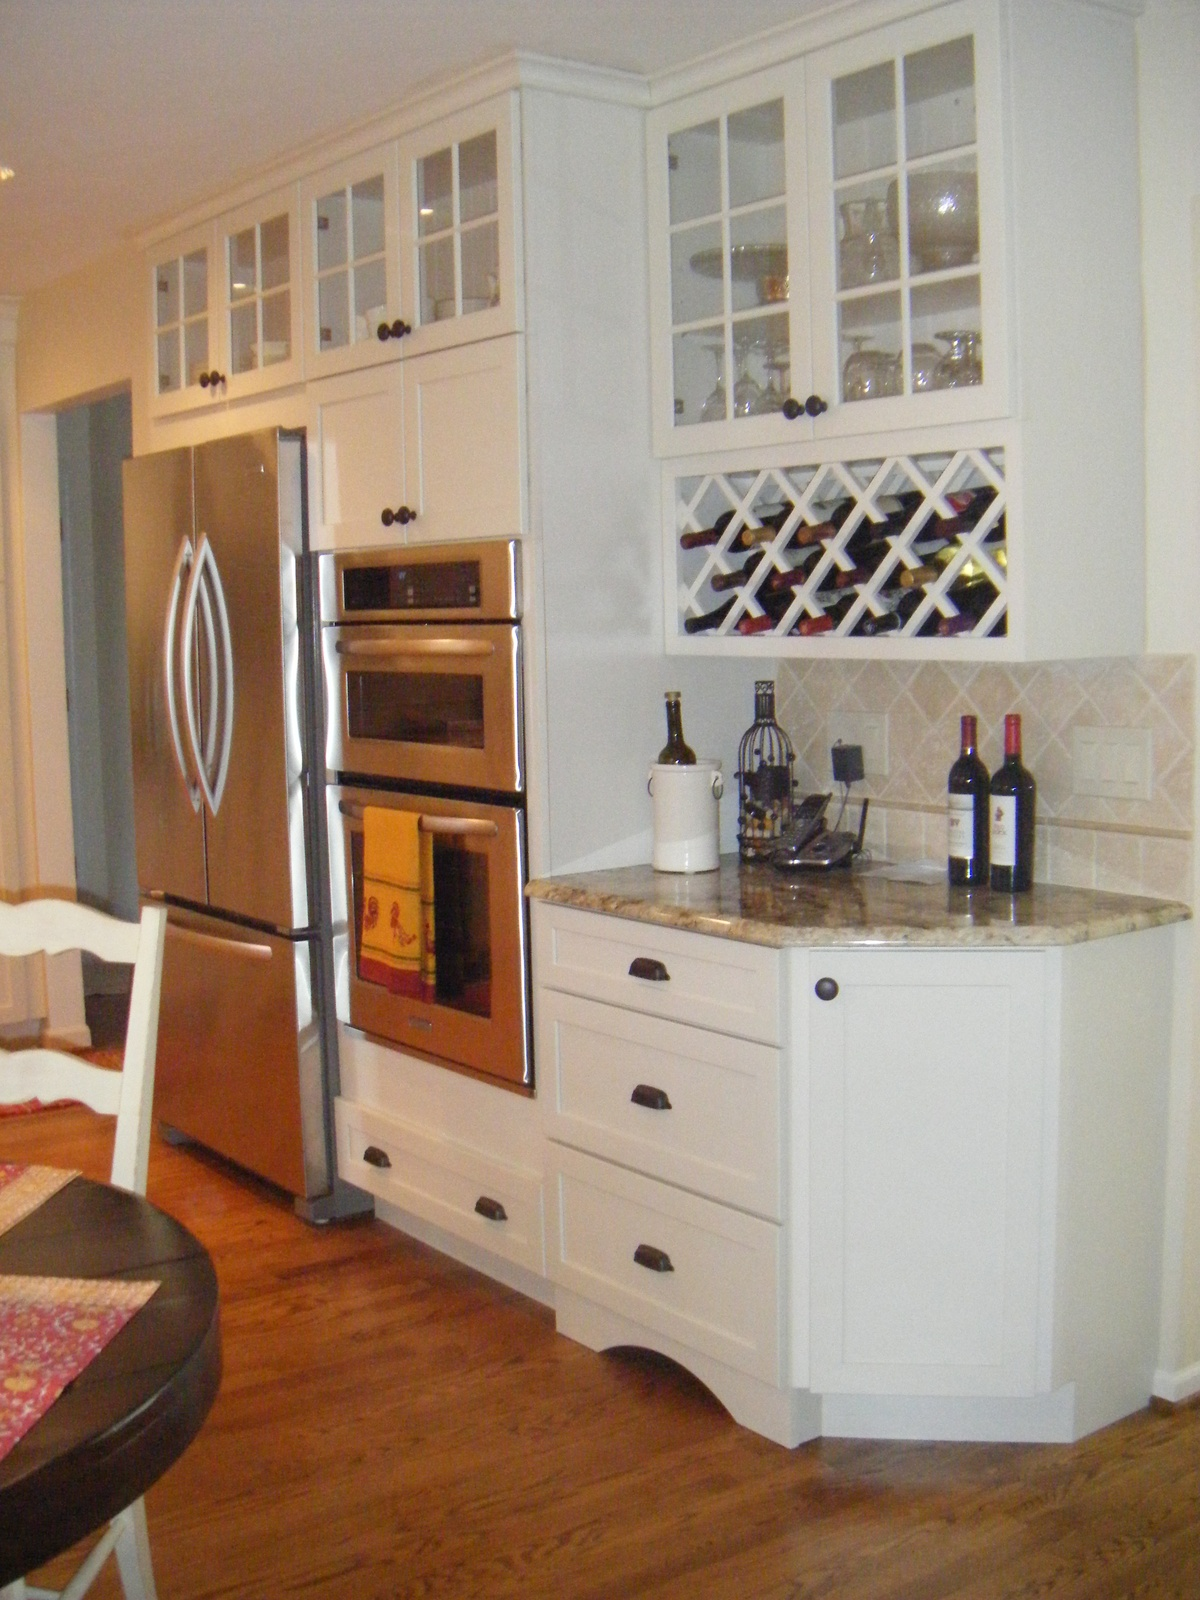 pottery barn kitchen hutch frigidaire appliances farmhouse sinks grey granite countertops and on